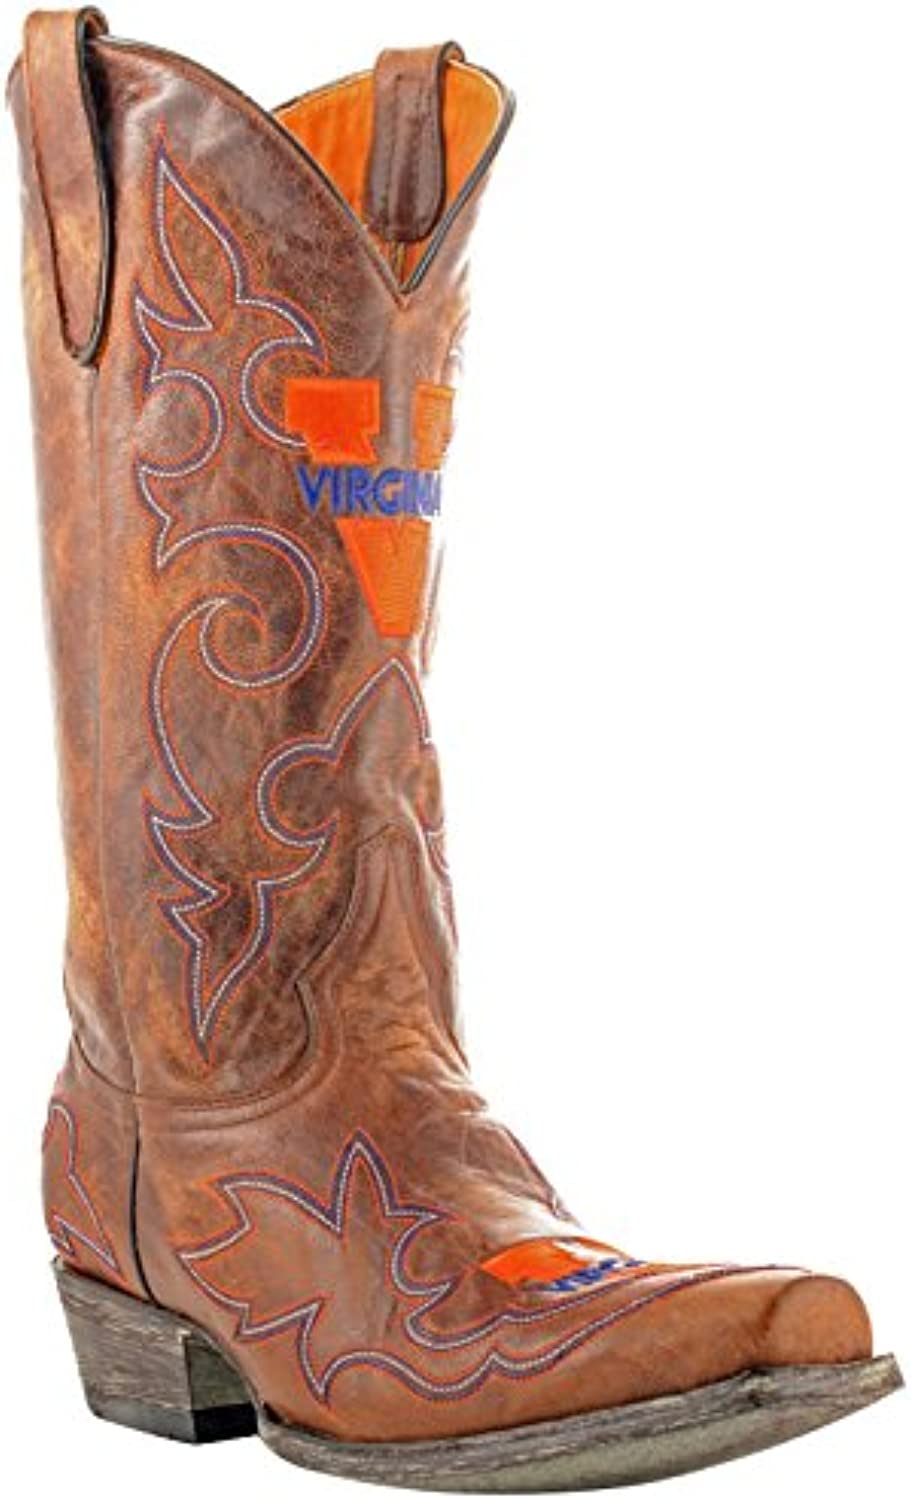 NCAA Virginia Cavaliers Herren Gameday Stiefel